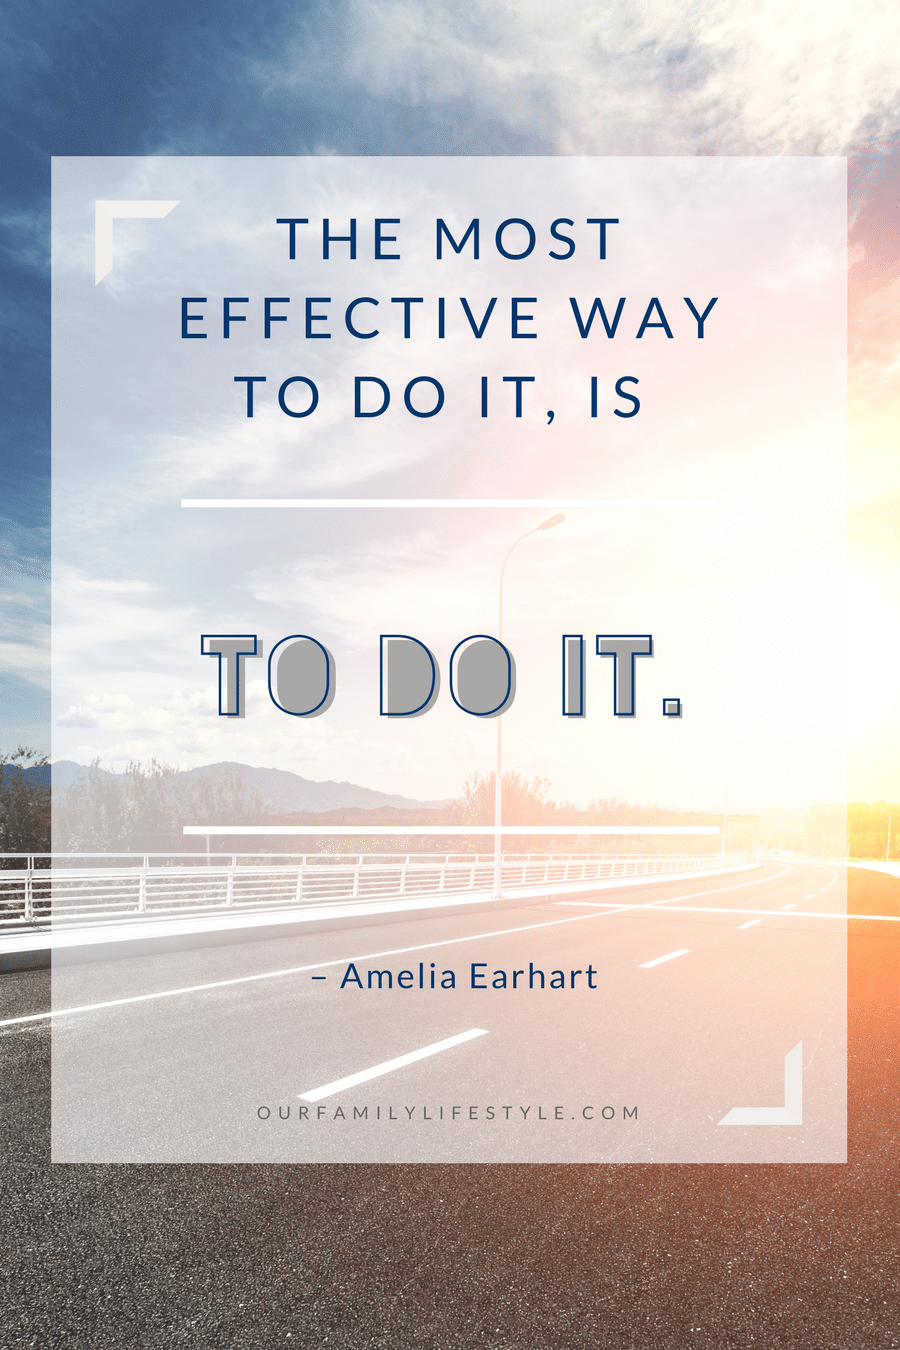 The most effective way to do it, is to do it. – Amelia Earhart